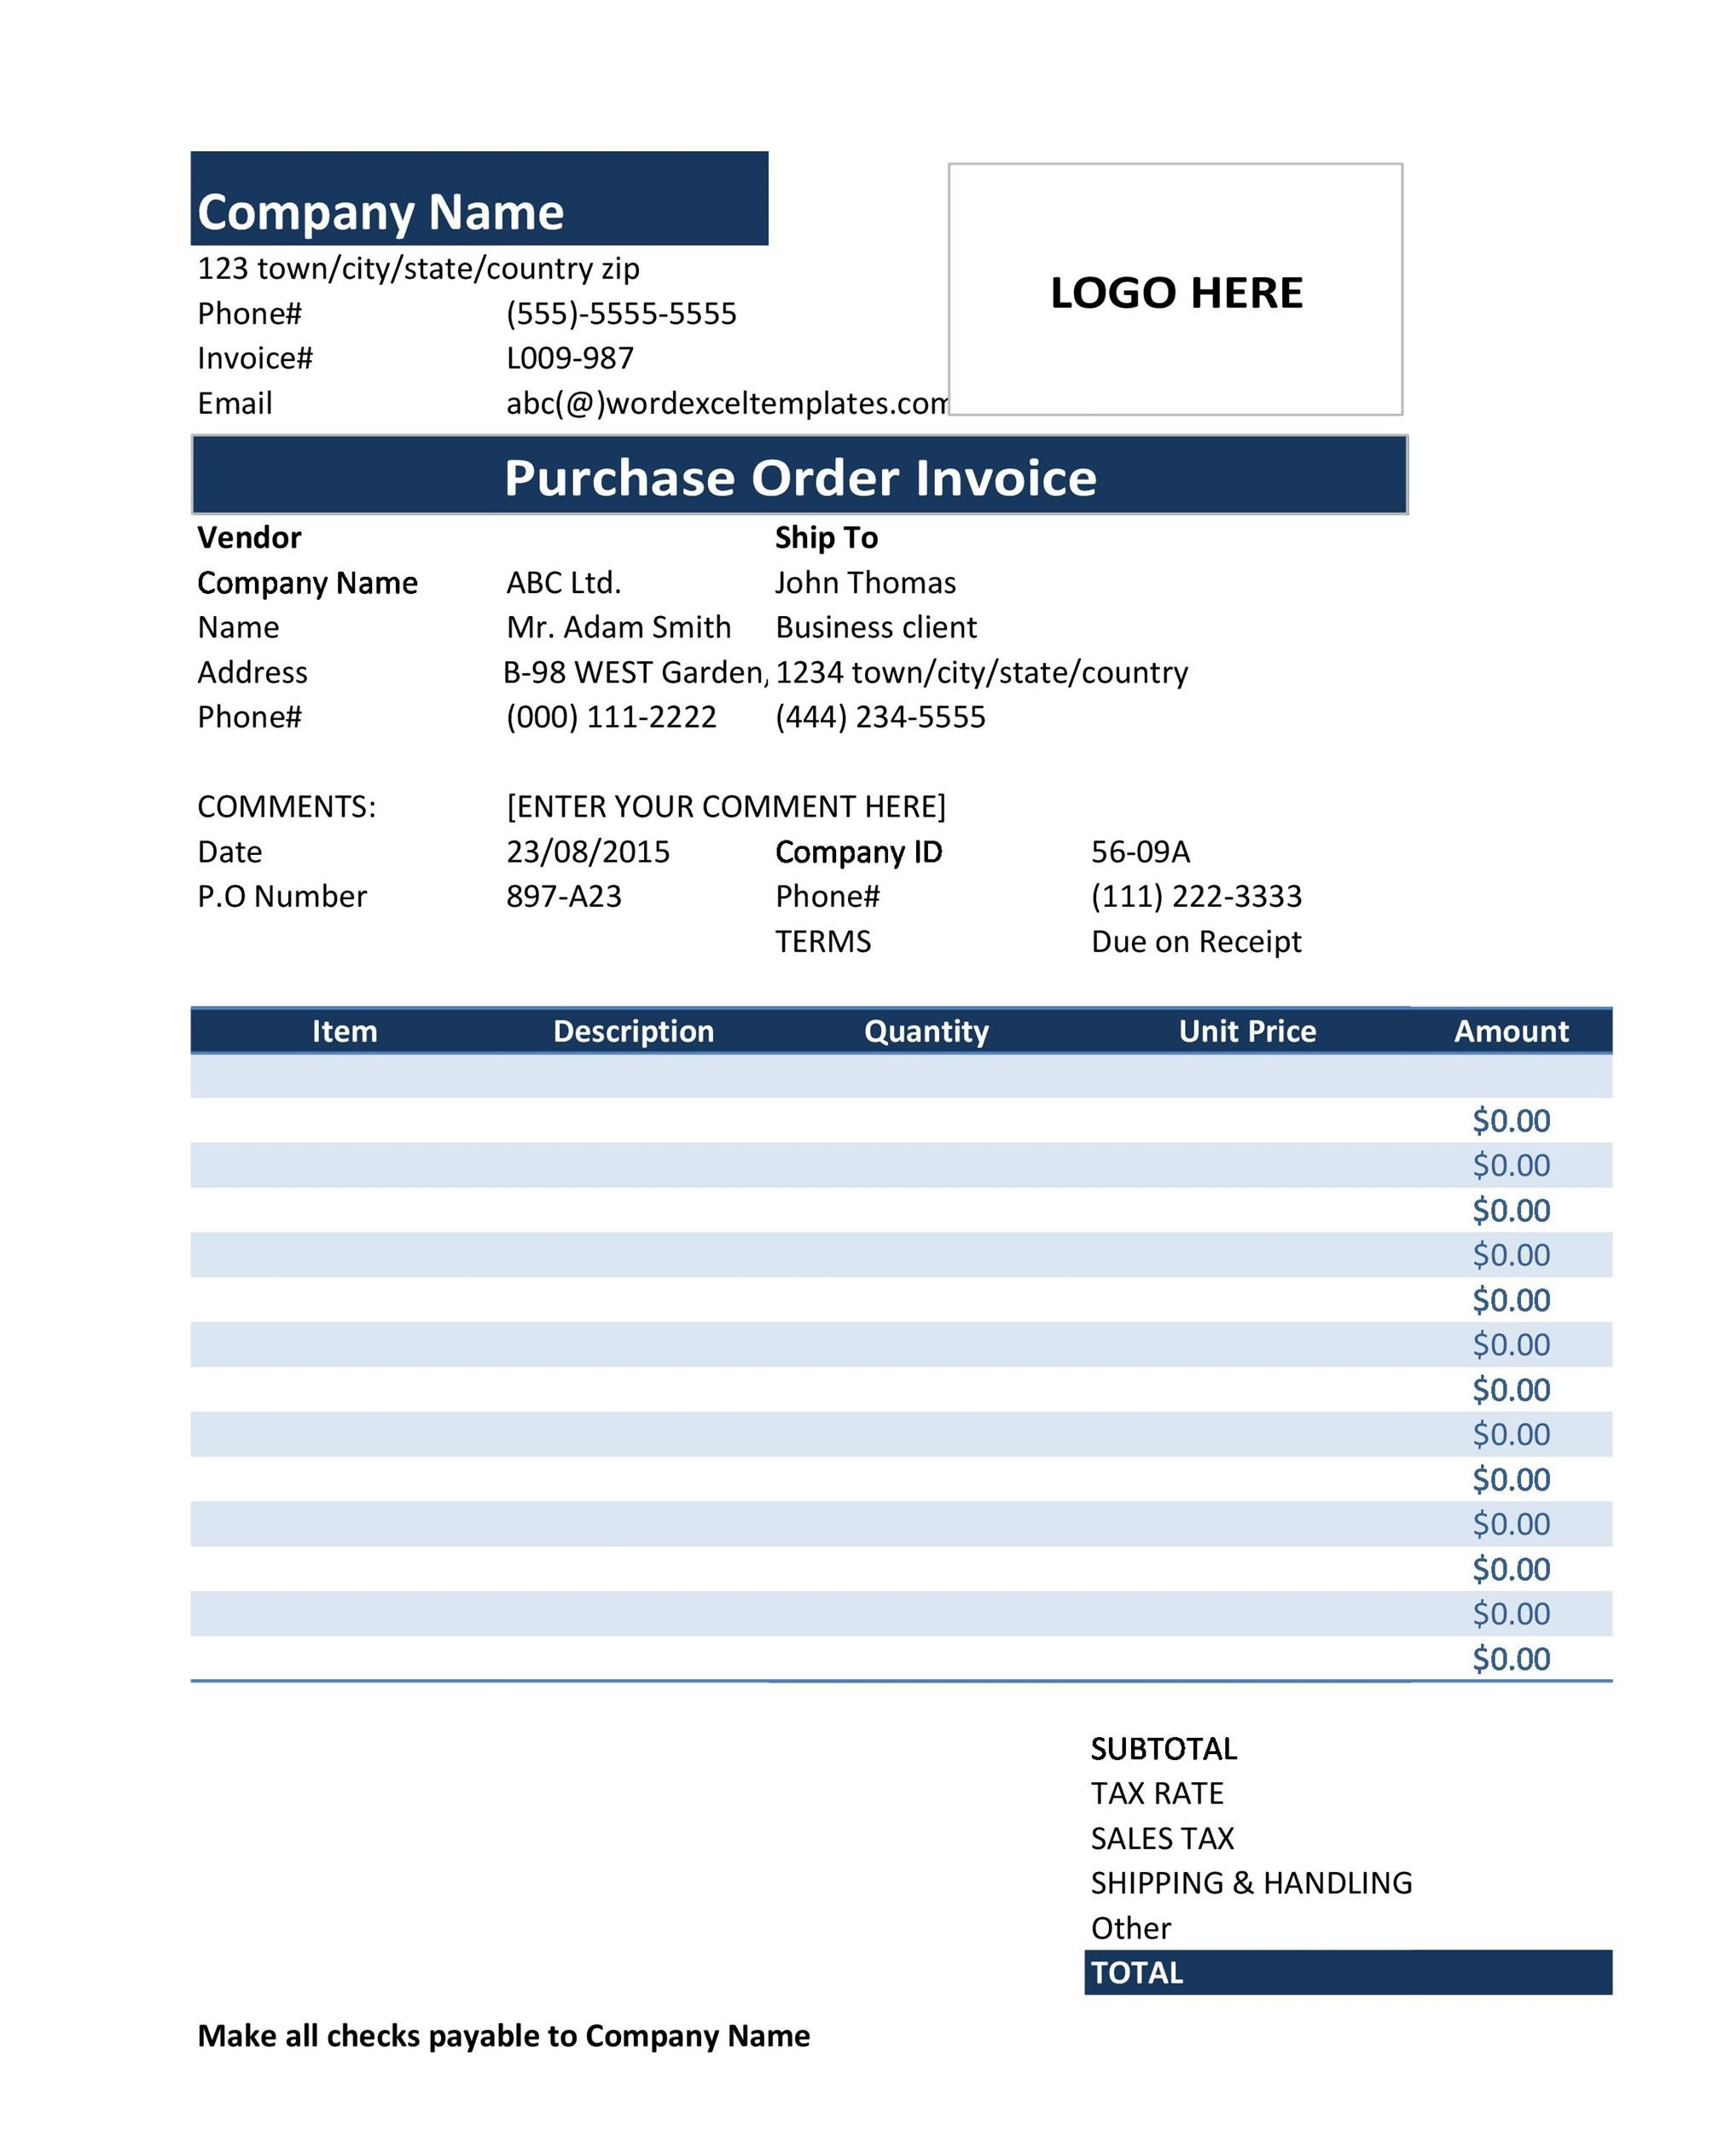 37 Free Purchase Order Templates in Word  Excel - po form template